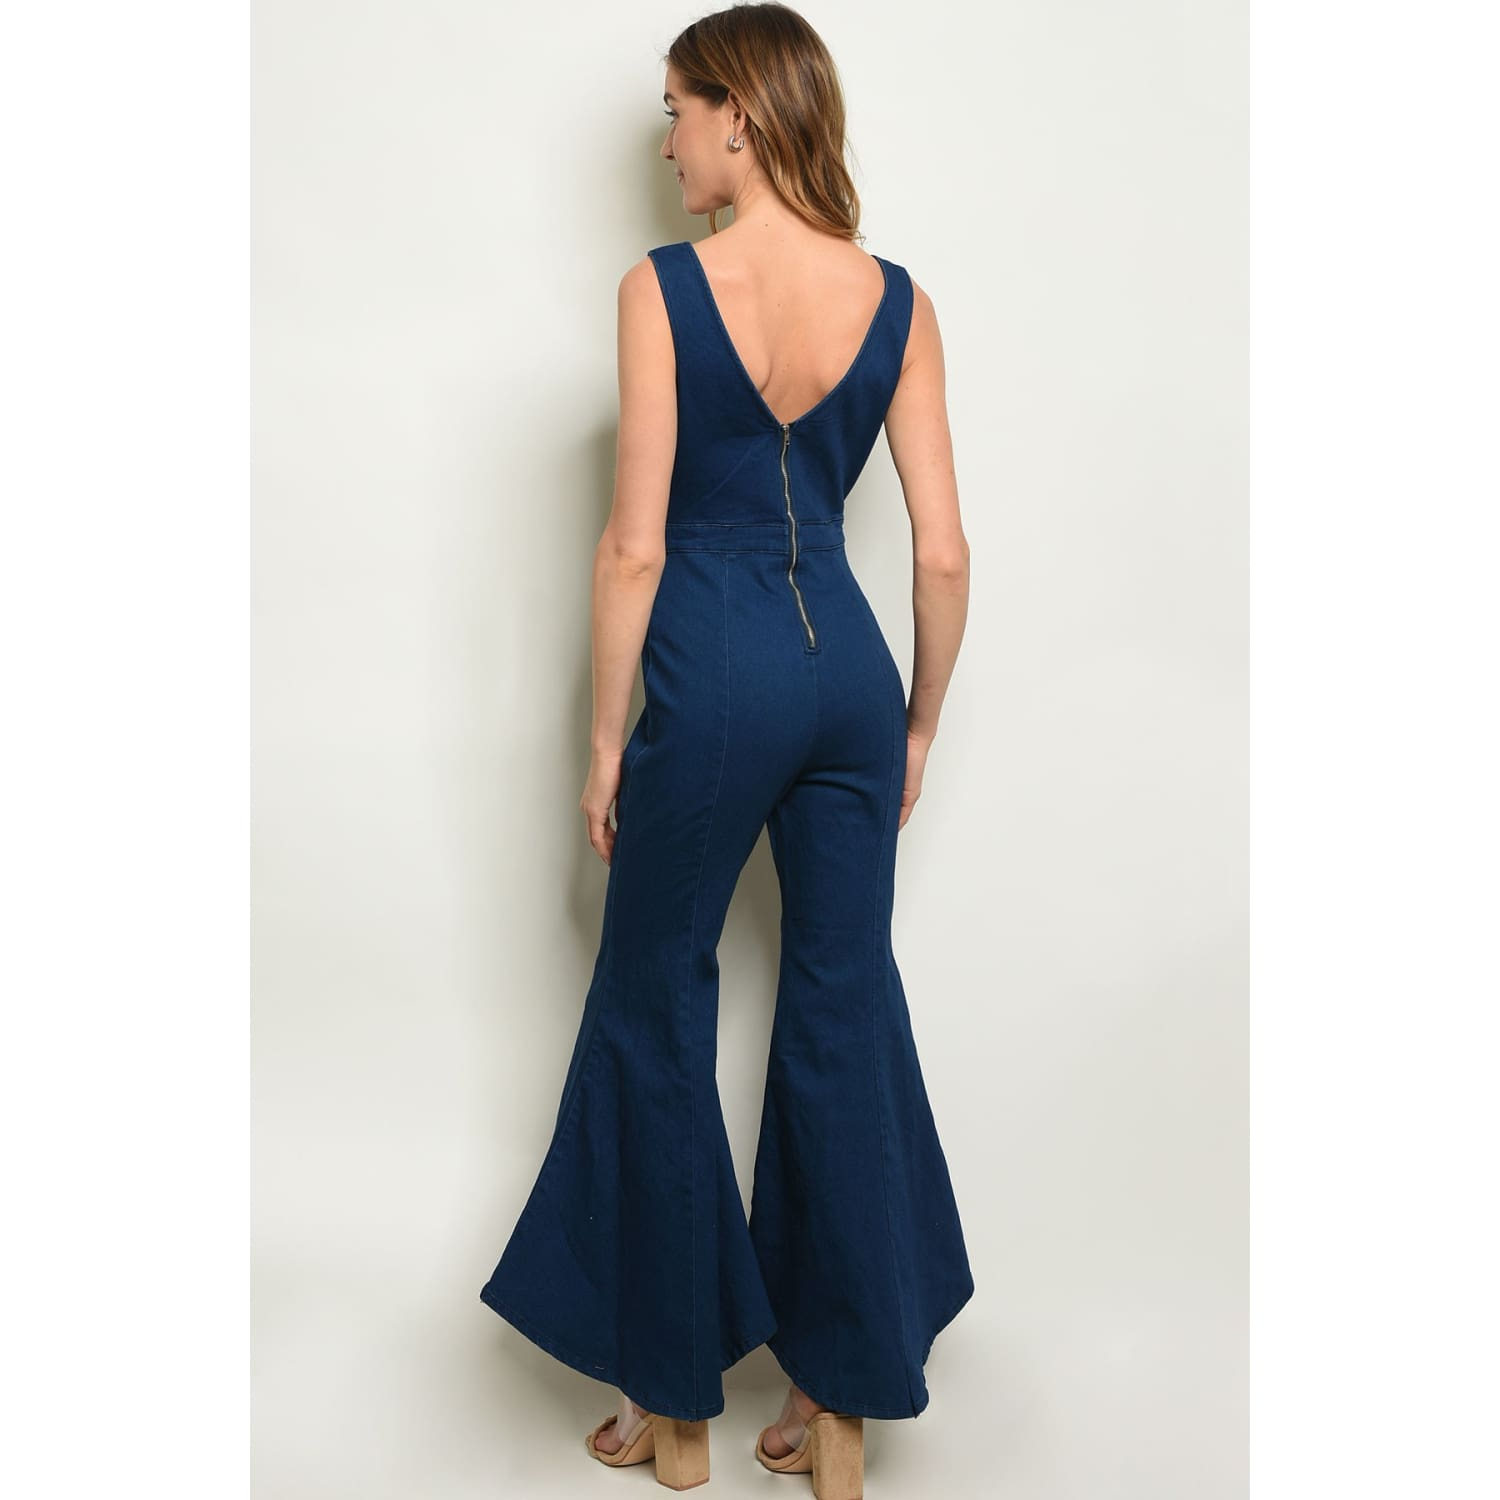 Denim Flare Bottom Jumpsuit - Best YOU by HTS